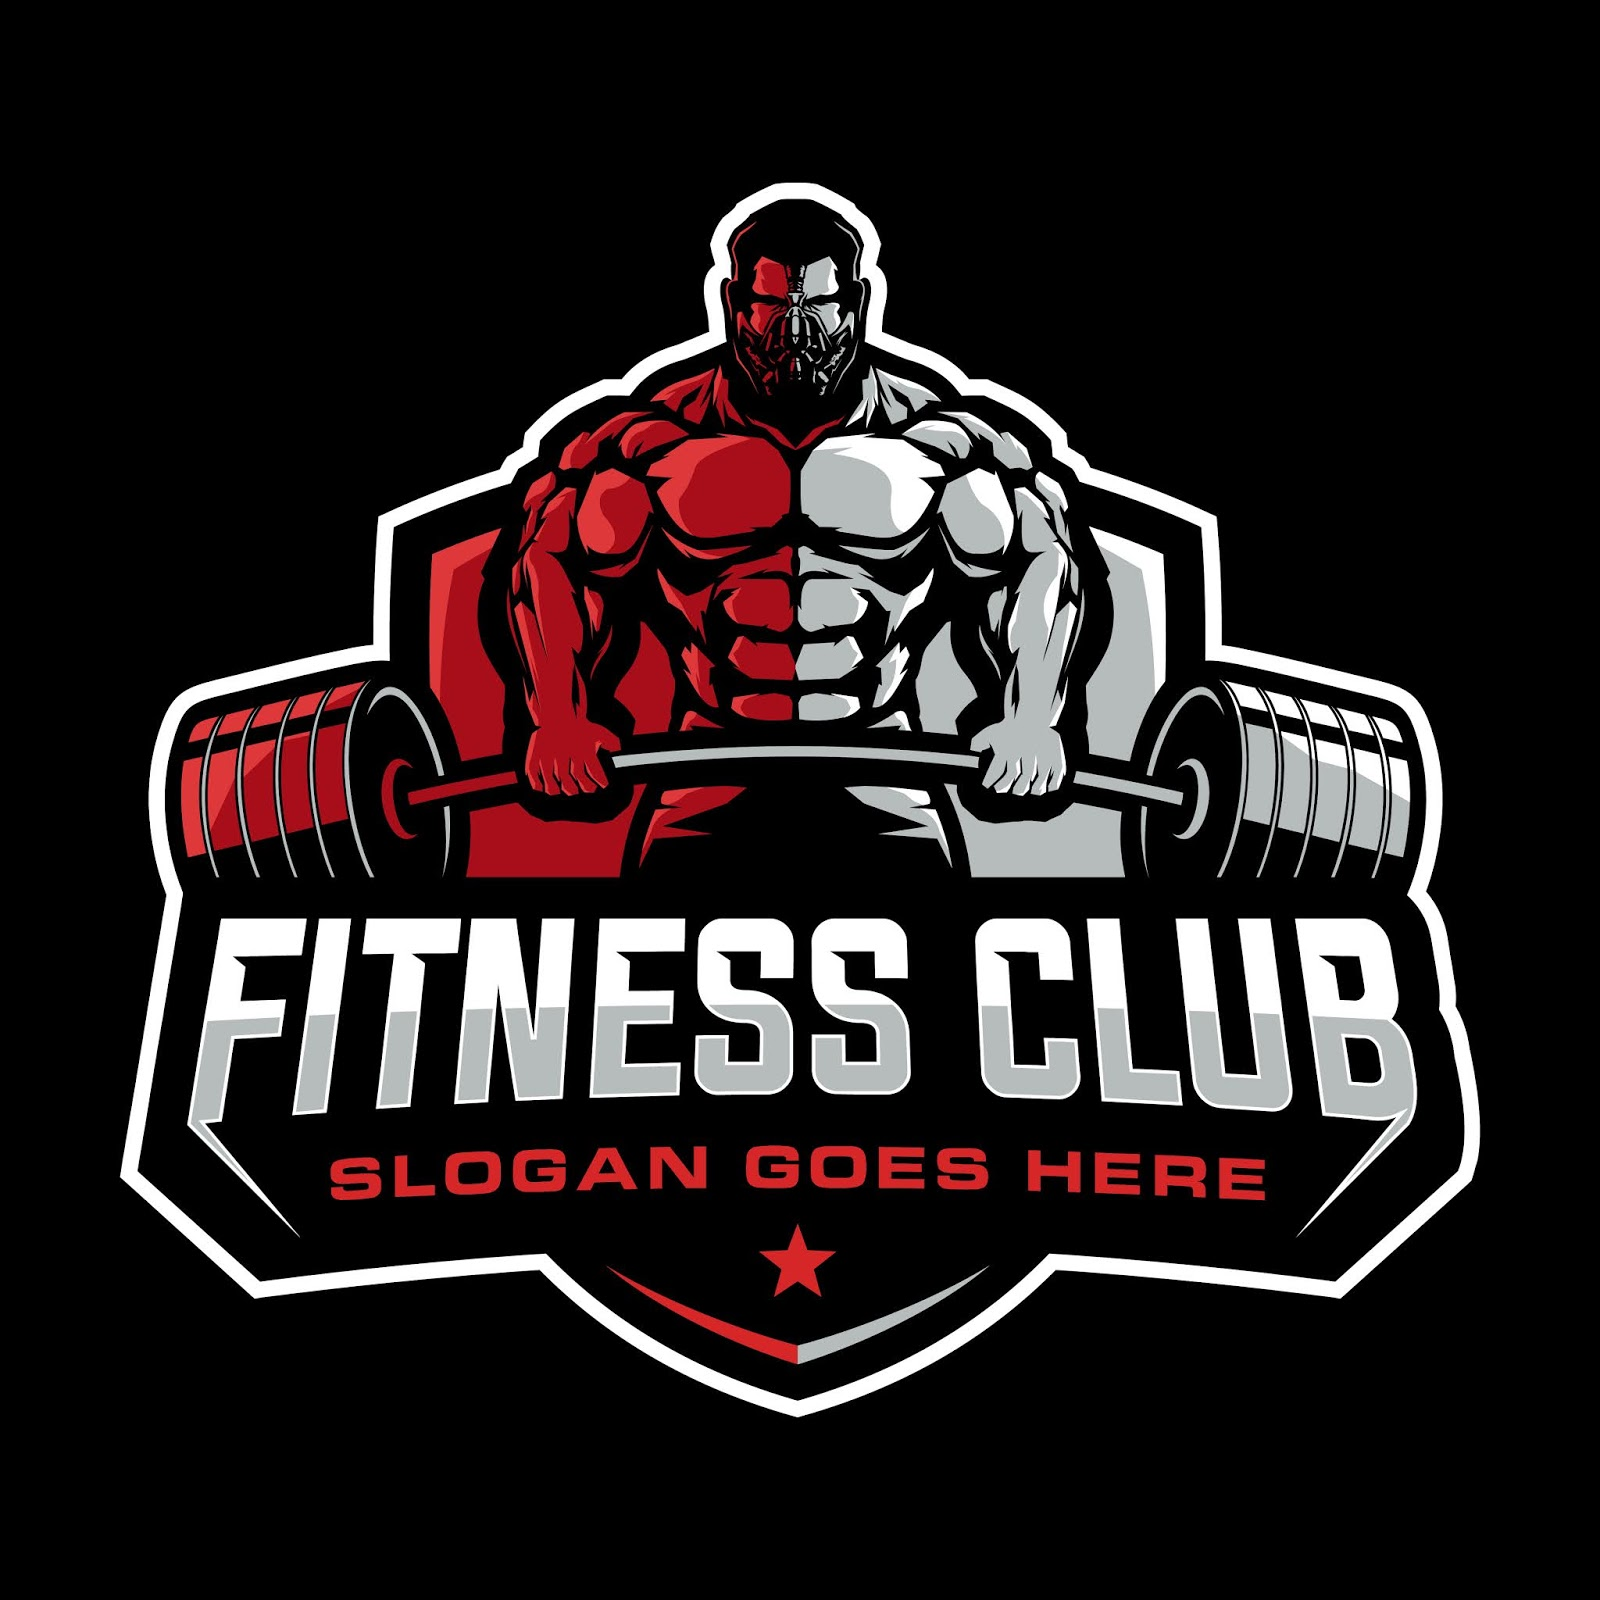 Fitness Logo Design Free Download Vector CDR, AI, EPS and PNG Formats